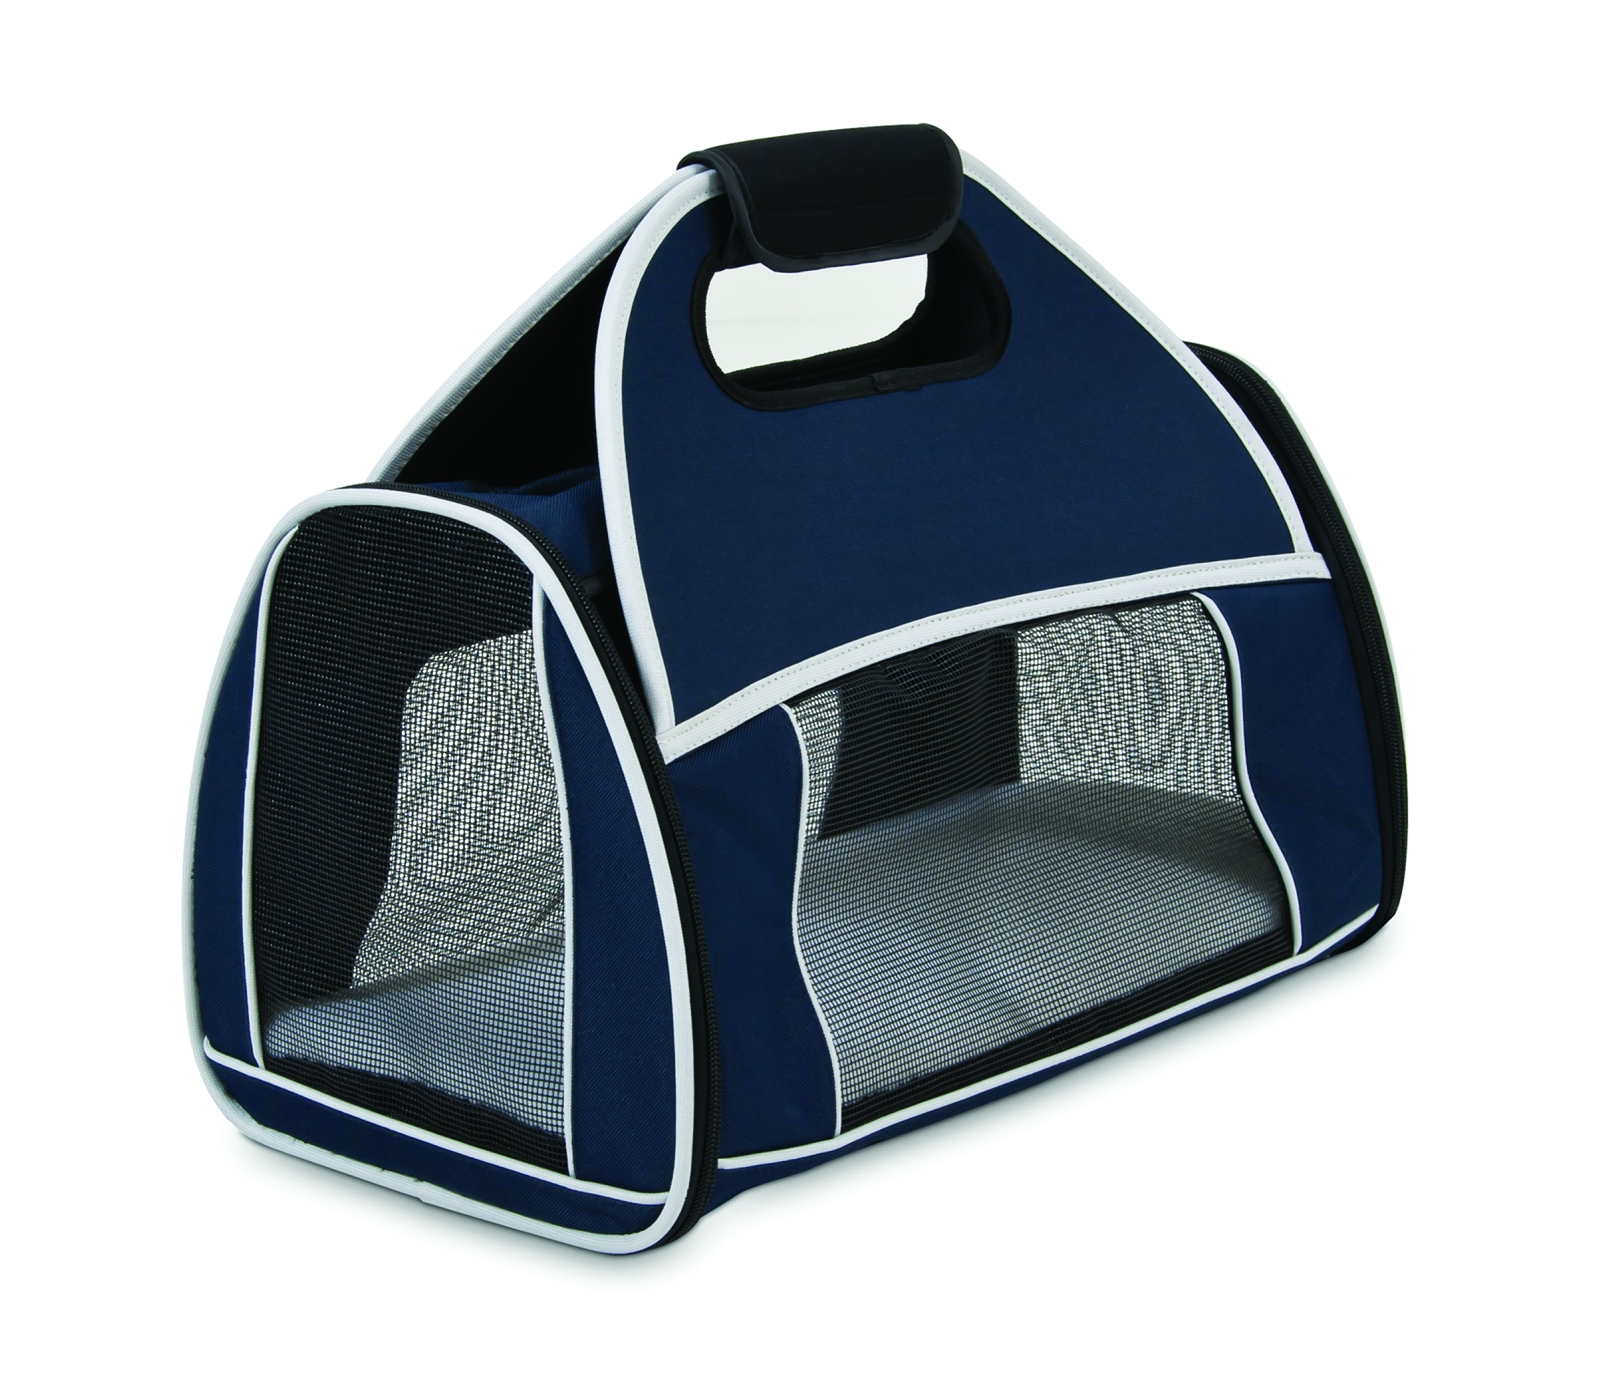 Petmate Express Pet Carrier